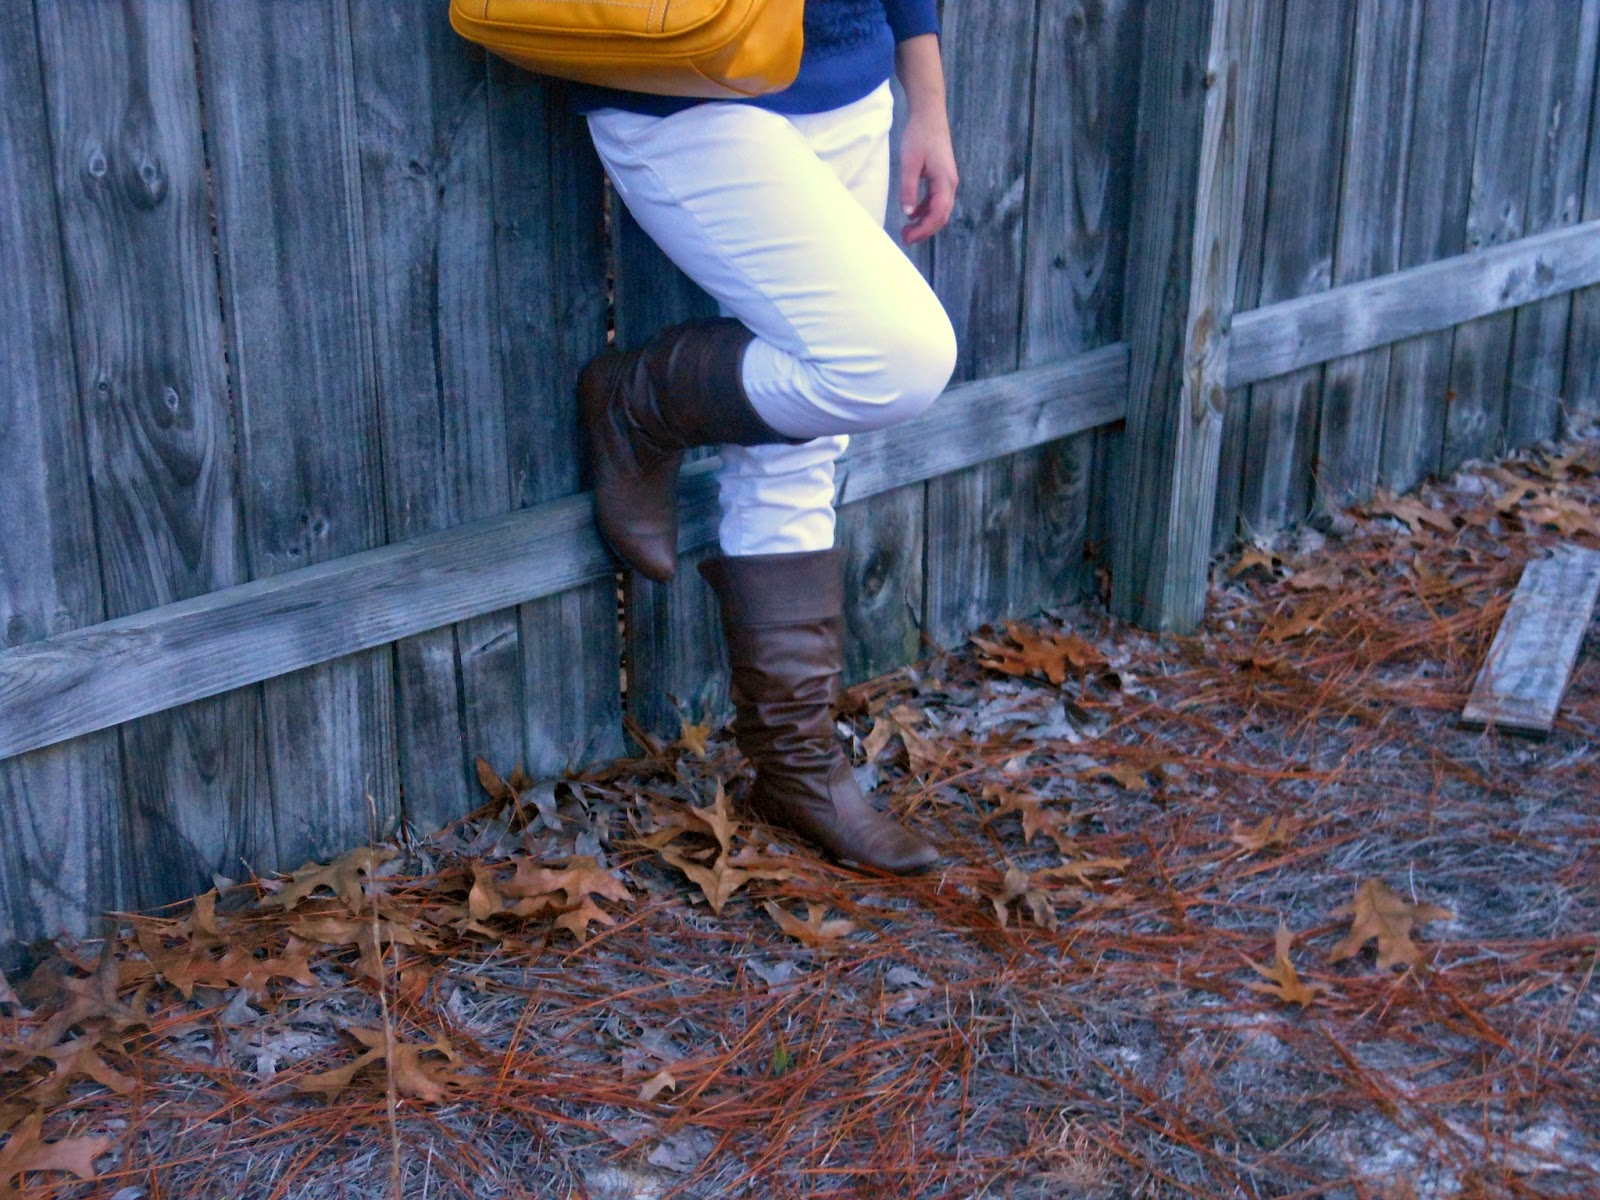 Mustard and Navy. Navy lace top, white jeans, brown boots, mustard bag, gold jewelry